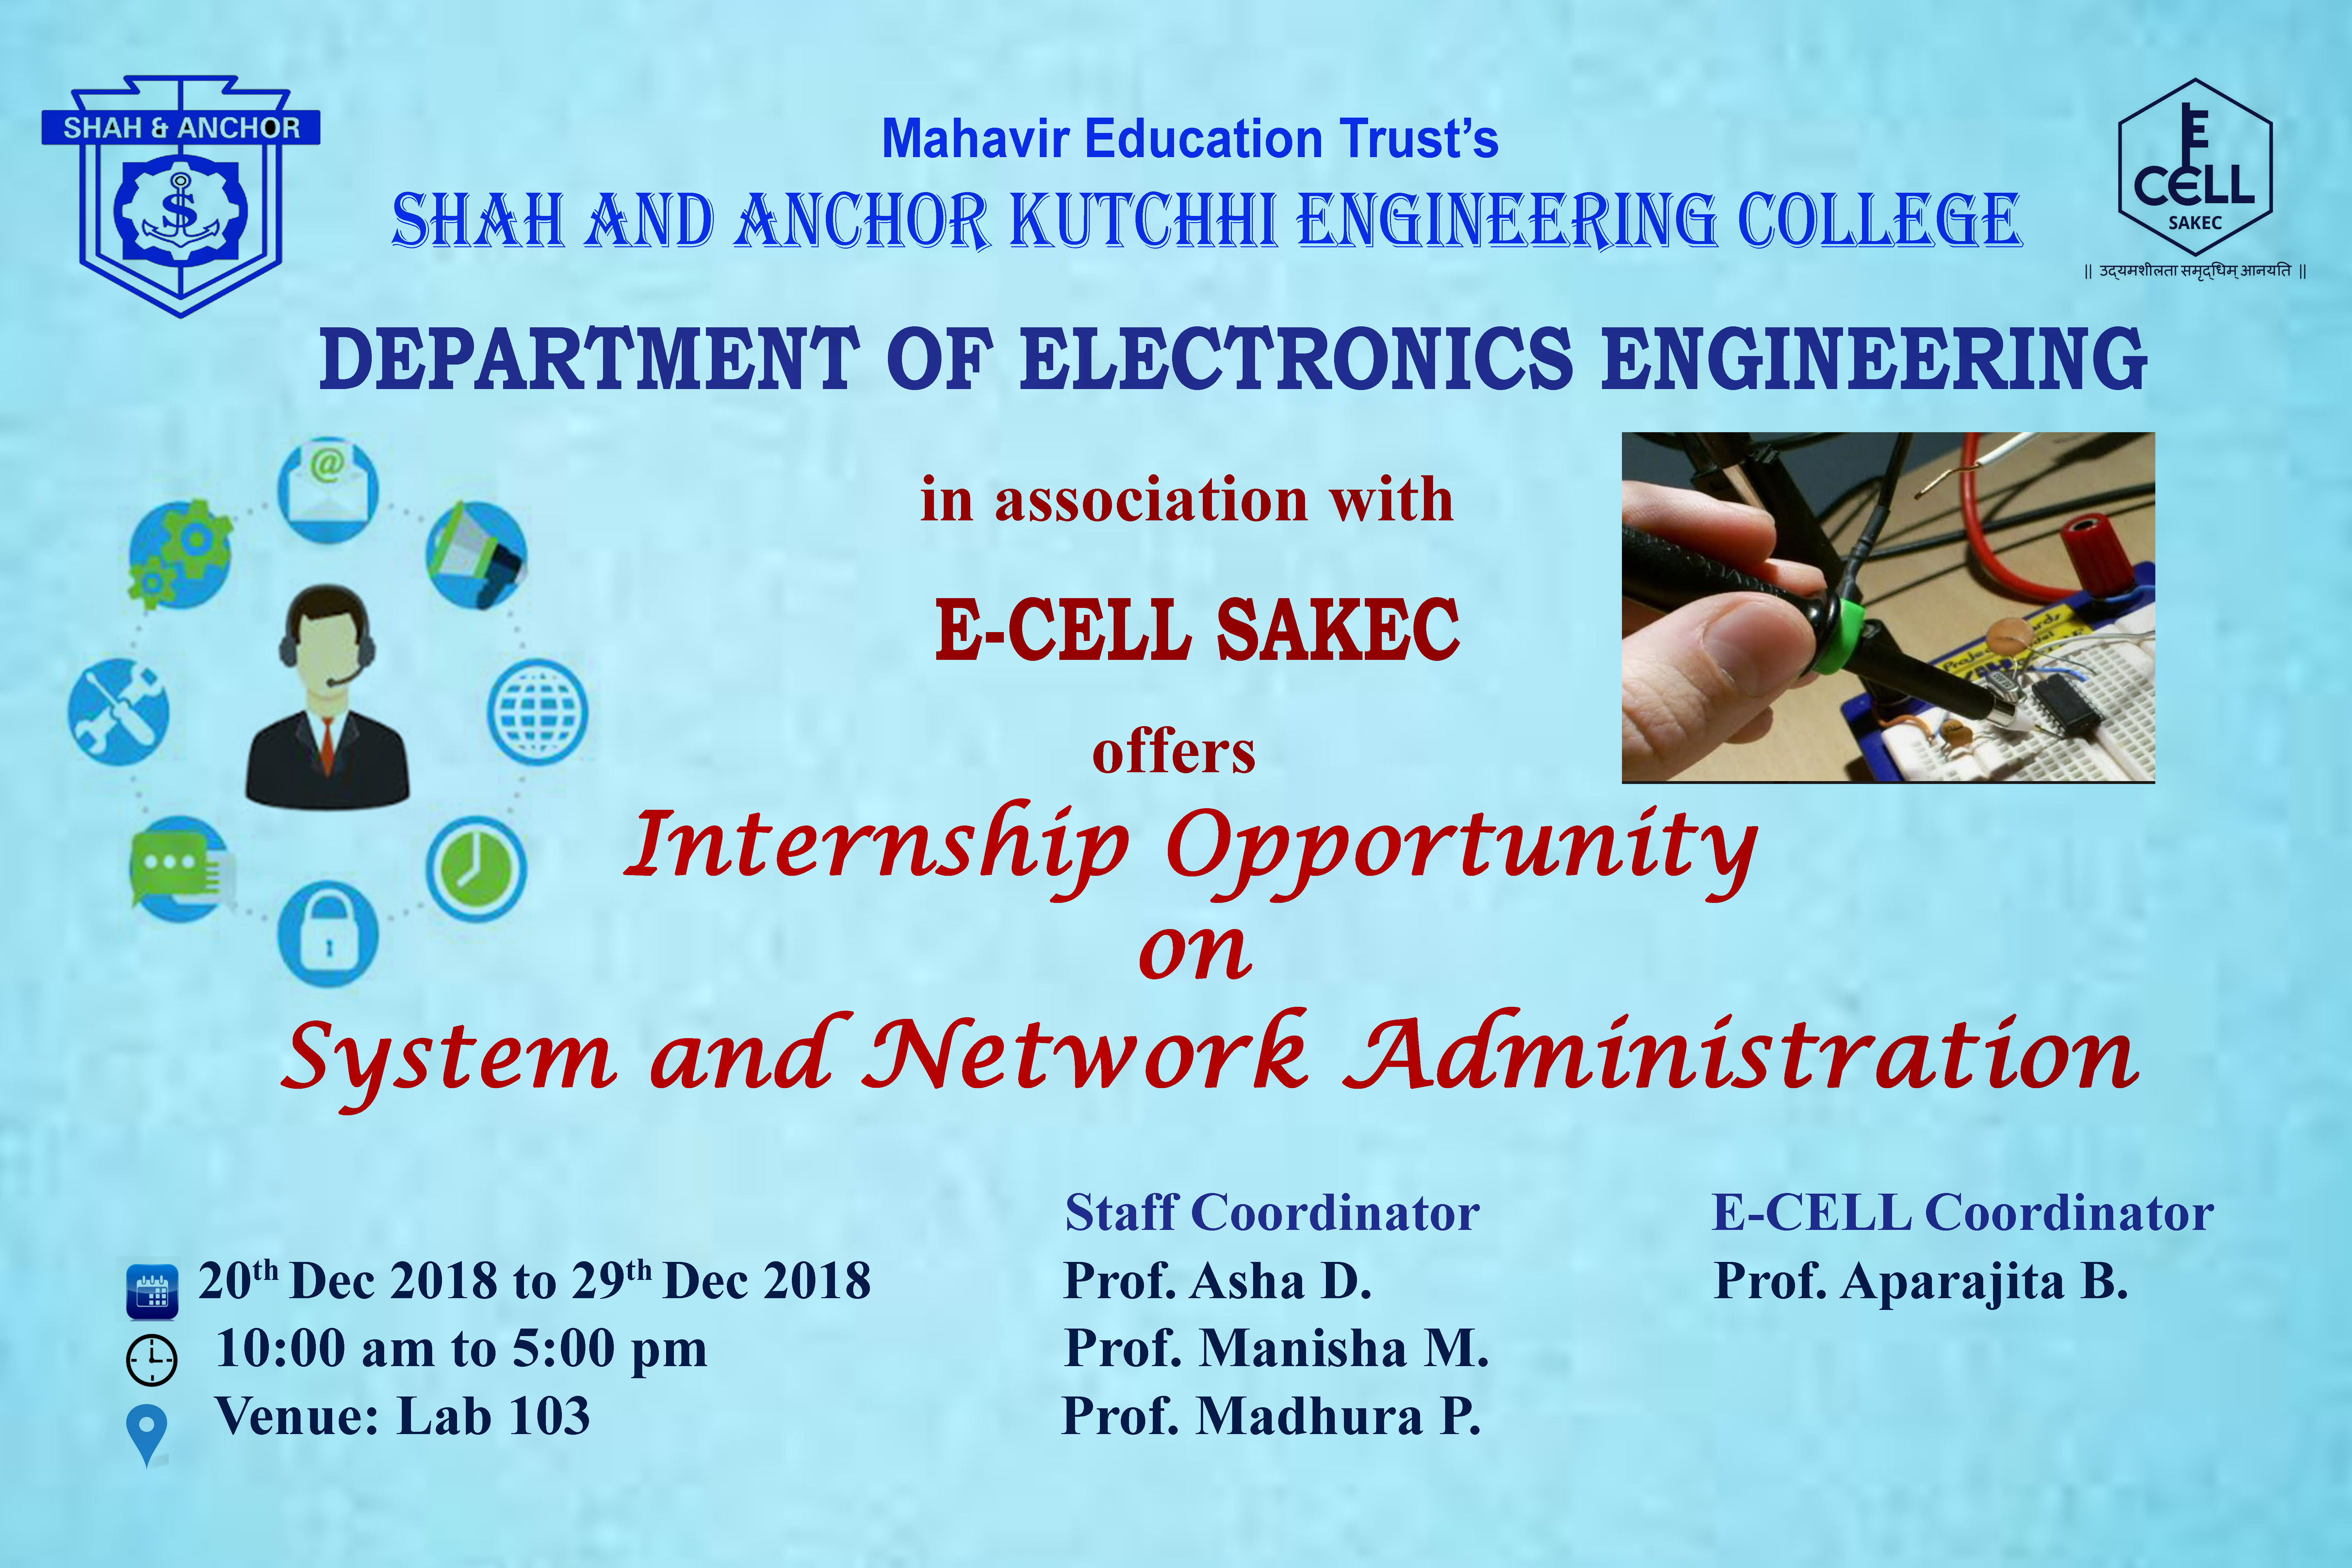 AN INTERNSHIP OPPORTUNITY ON SYSTEM AND NETWORK ADMINISTRATION